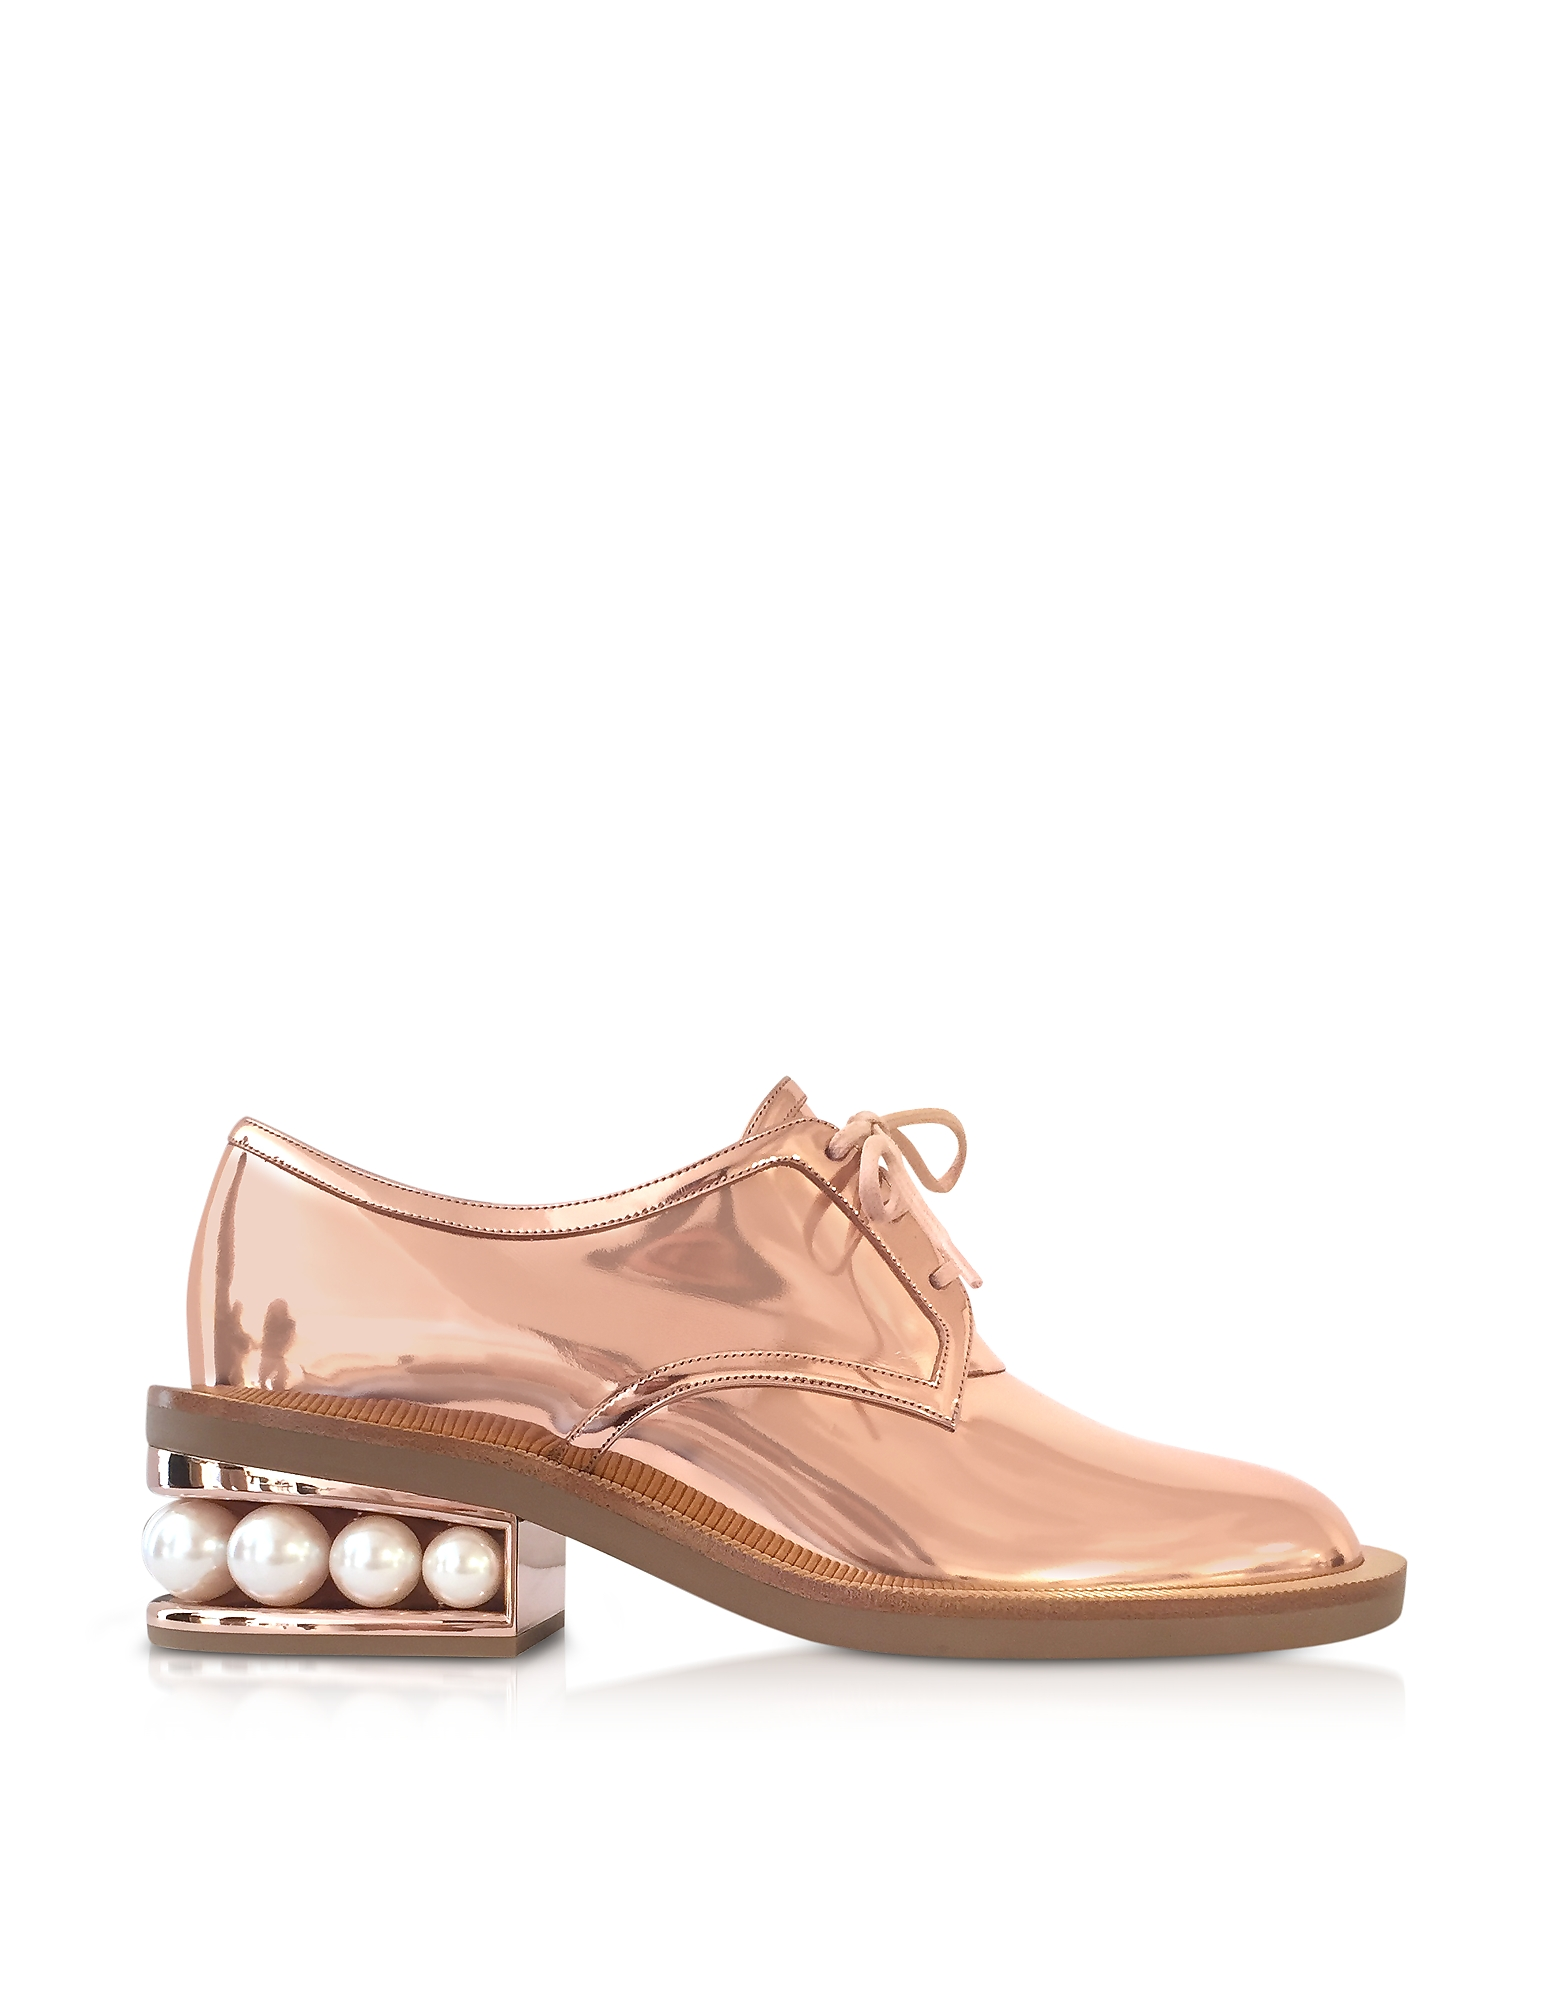 Nicholas Kirkwood Shoes, Copper Eco-Patent Leather Casati Pearl Derby Shoes